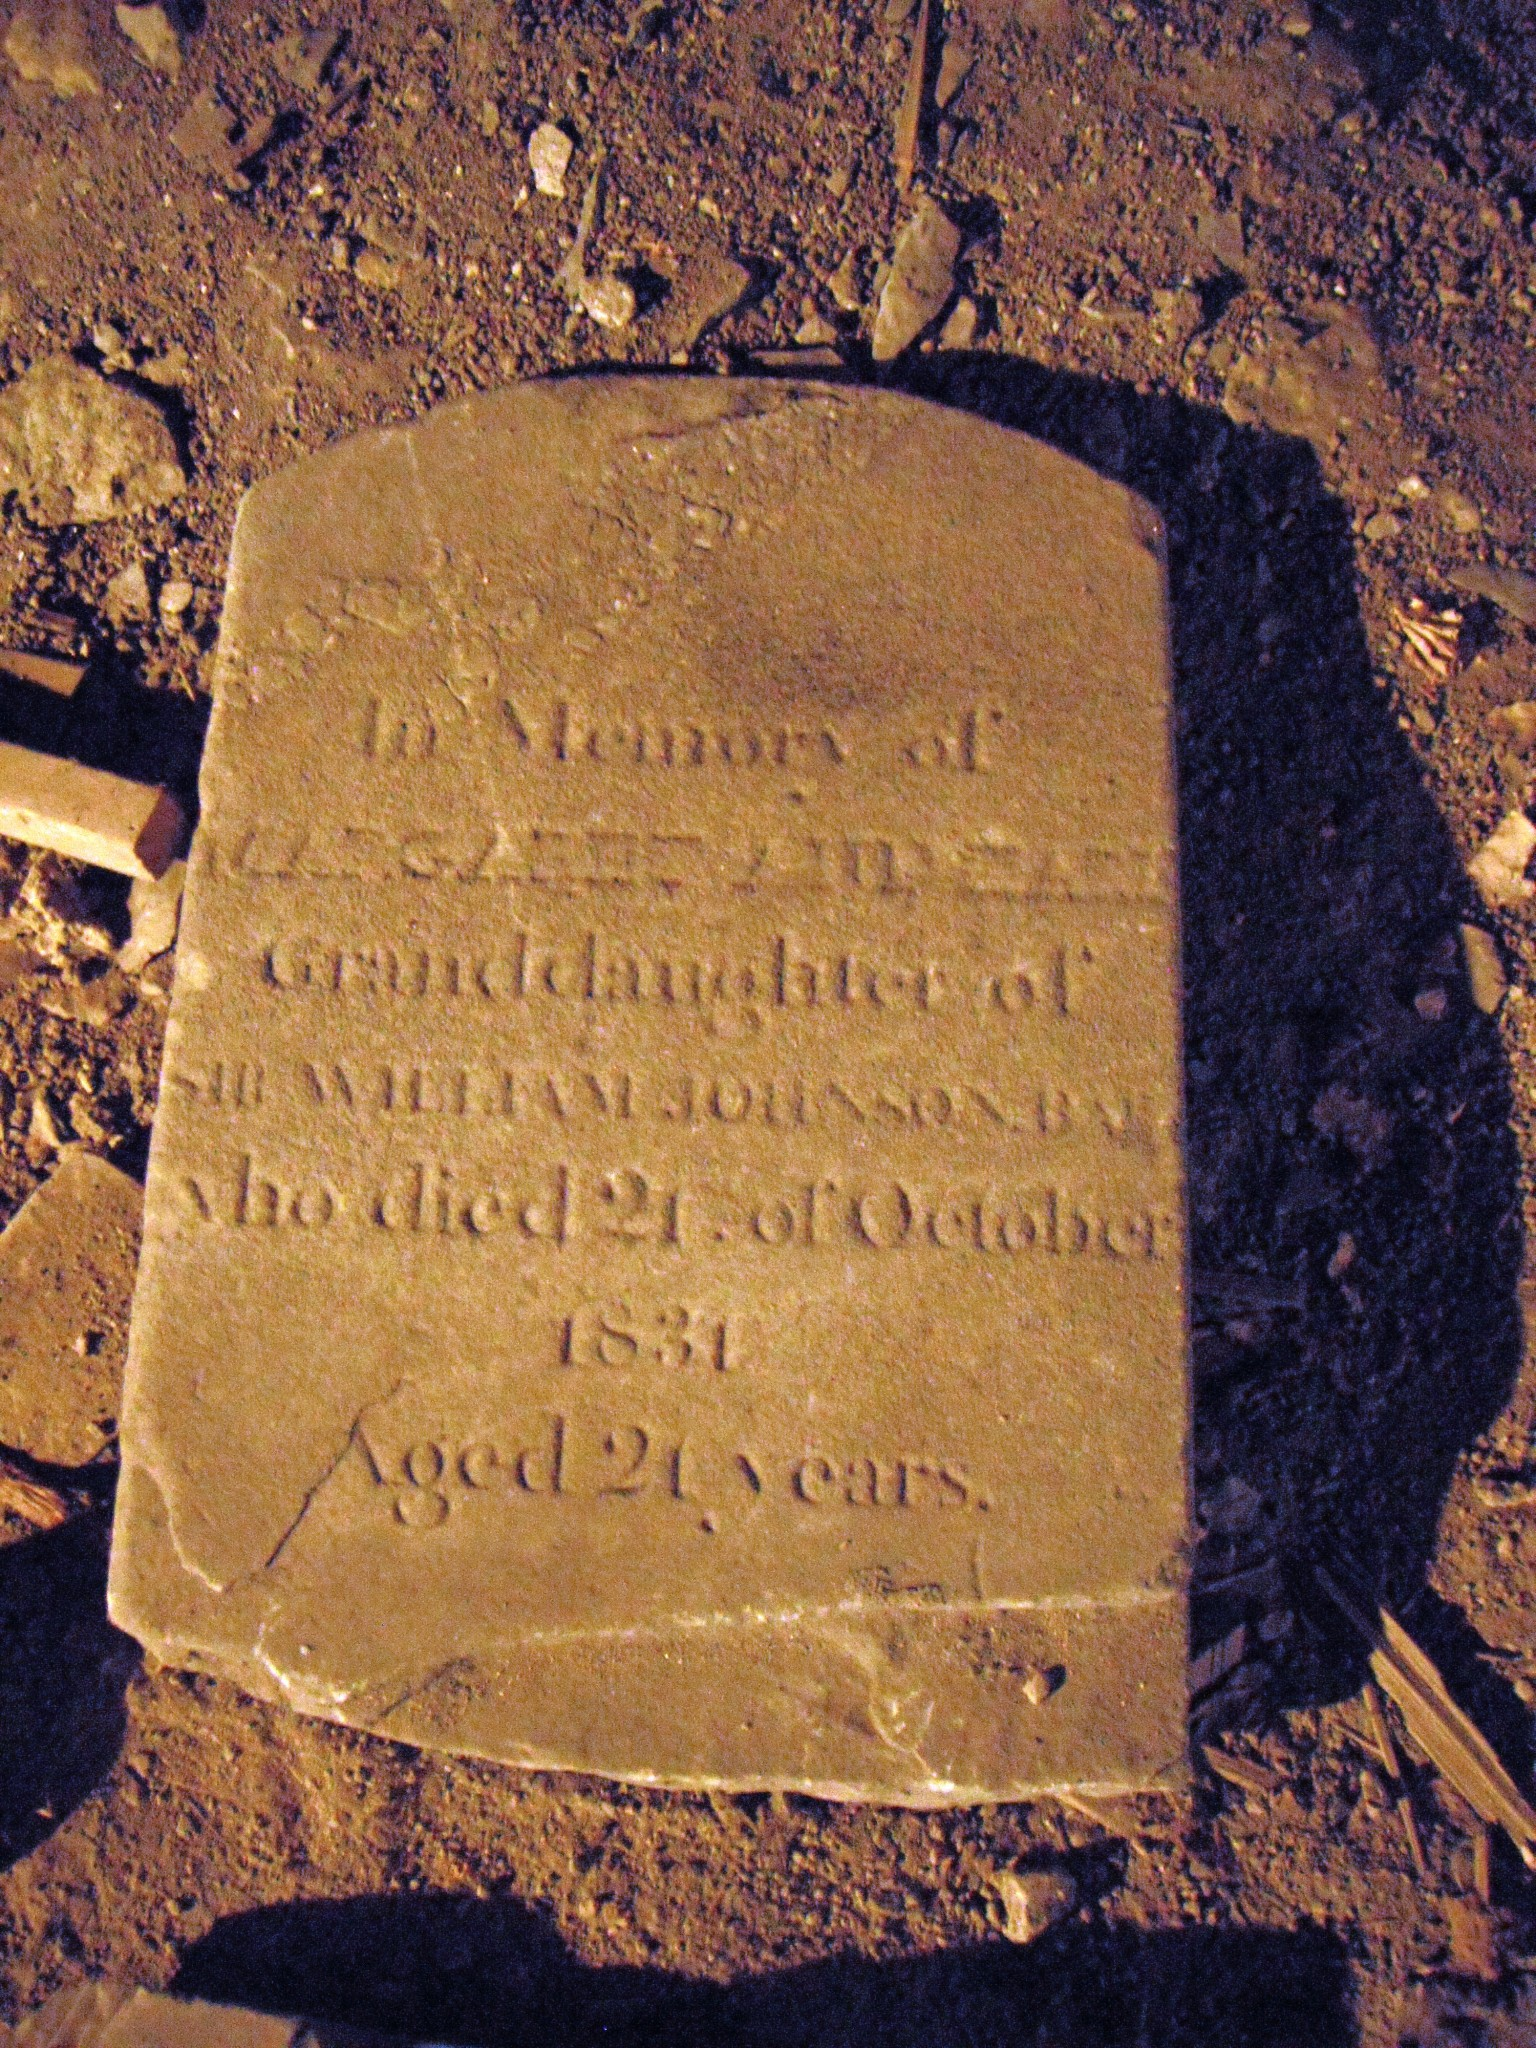 Marker for Margaret Earl, granddaughter of William Johnson and Molly Brant, under the church hall (Credit Mary Davis Little)